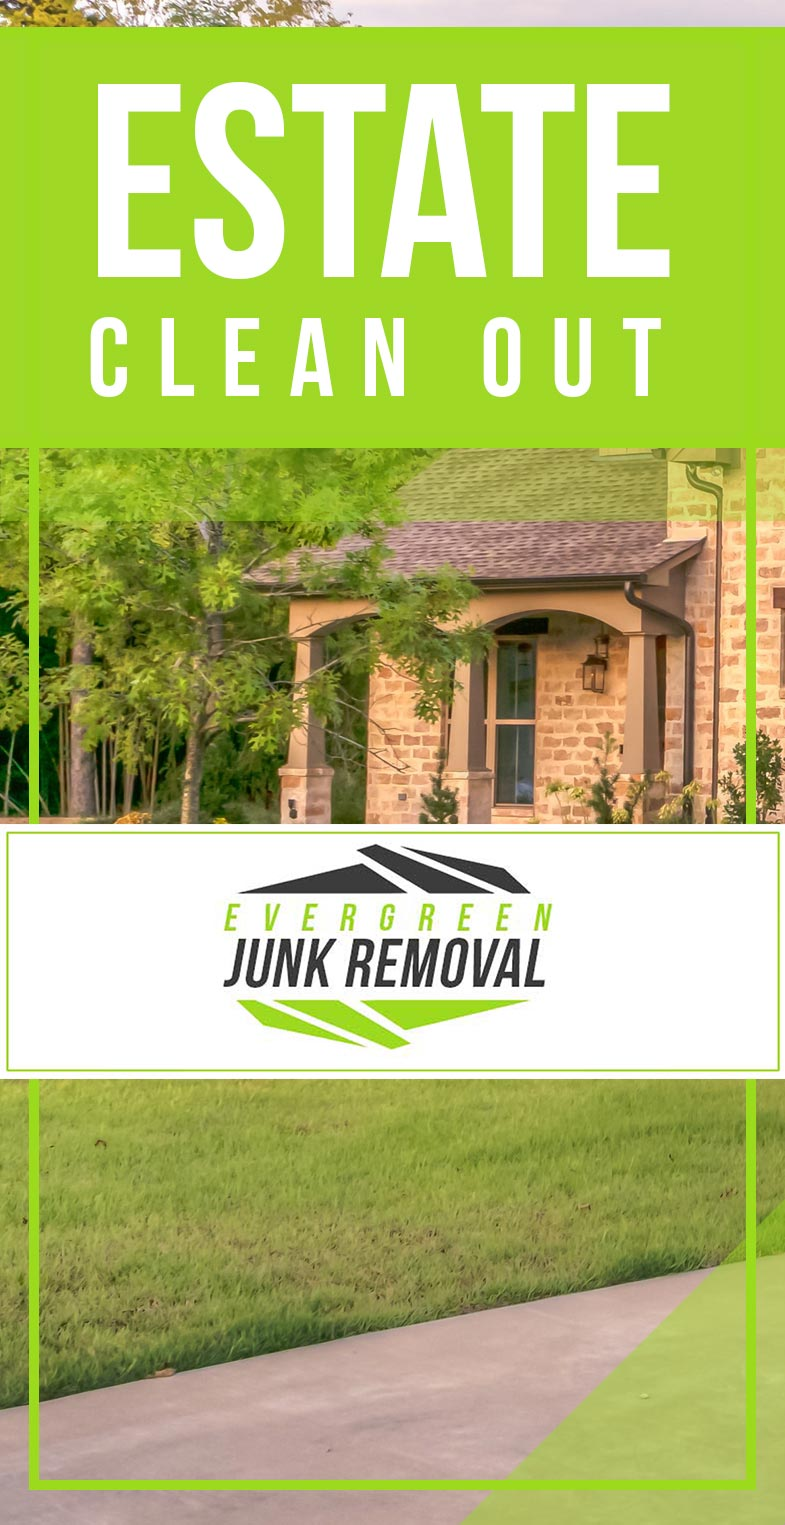 Junk Removal Hypoluxo Estate Clean Out